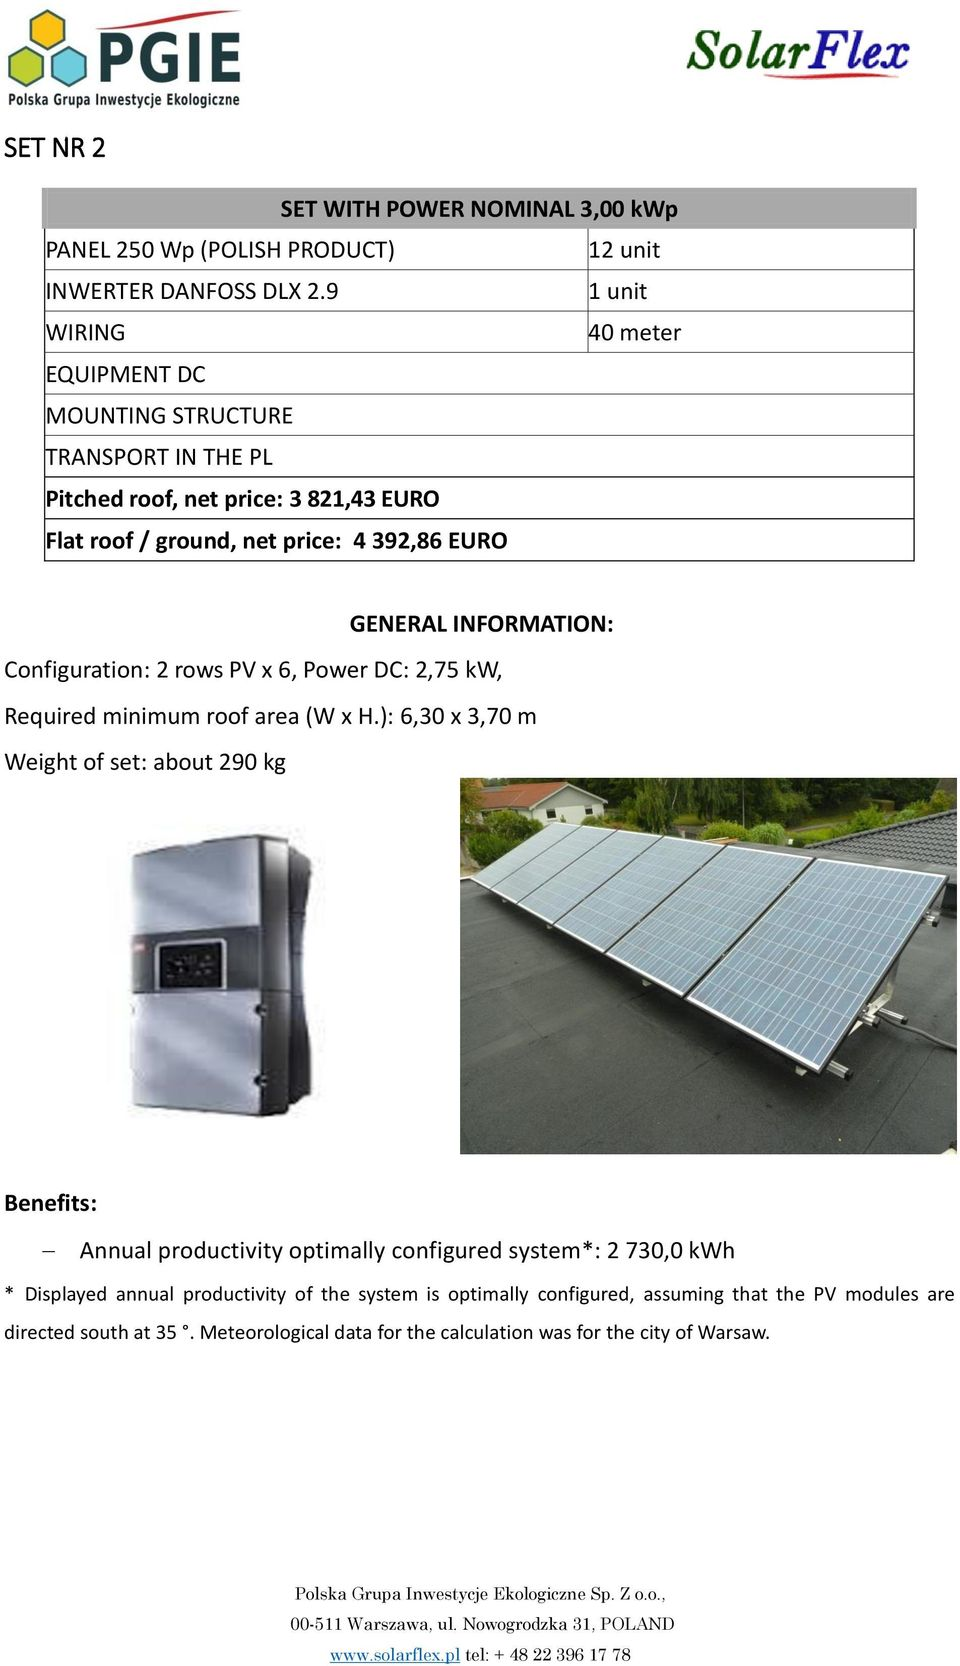 INFORMATION: Configuration: 2 rows PV x 6, Power DC: 2,75 kw, Required minimum roof area (W x H.